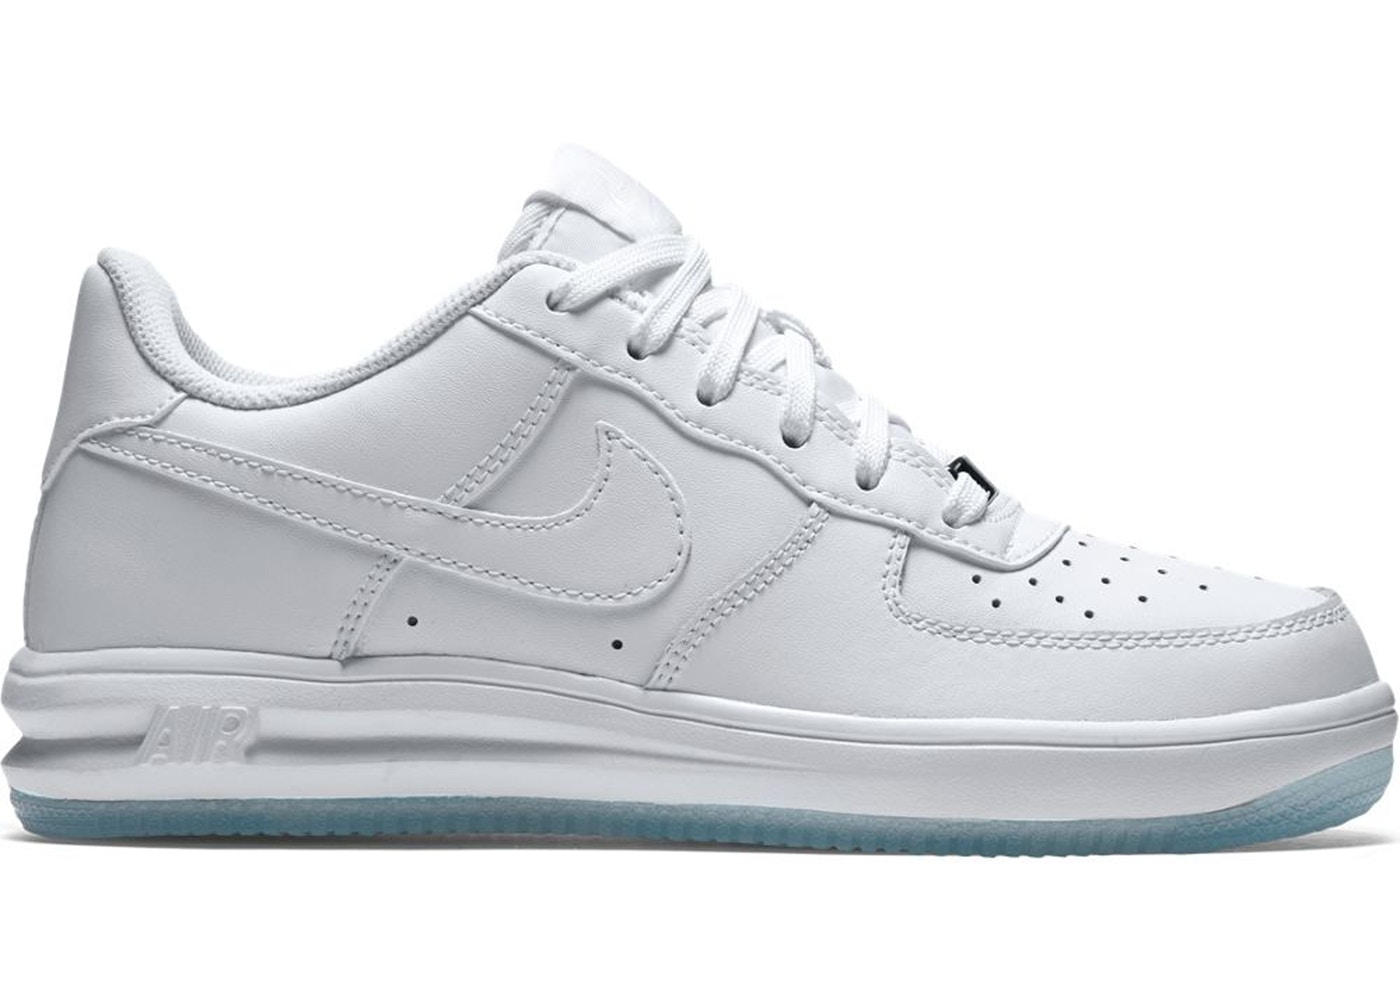 Nike Lunar Force 1 Low White Ice (GS) 820343 100